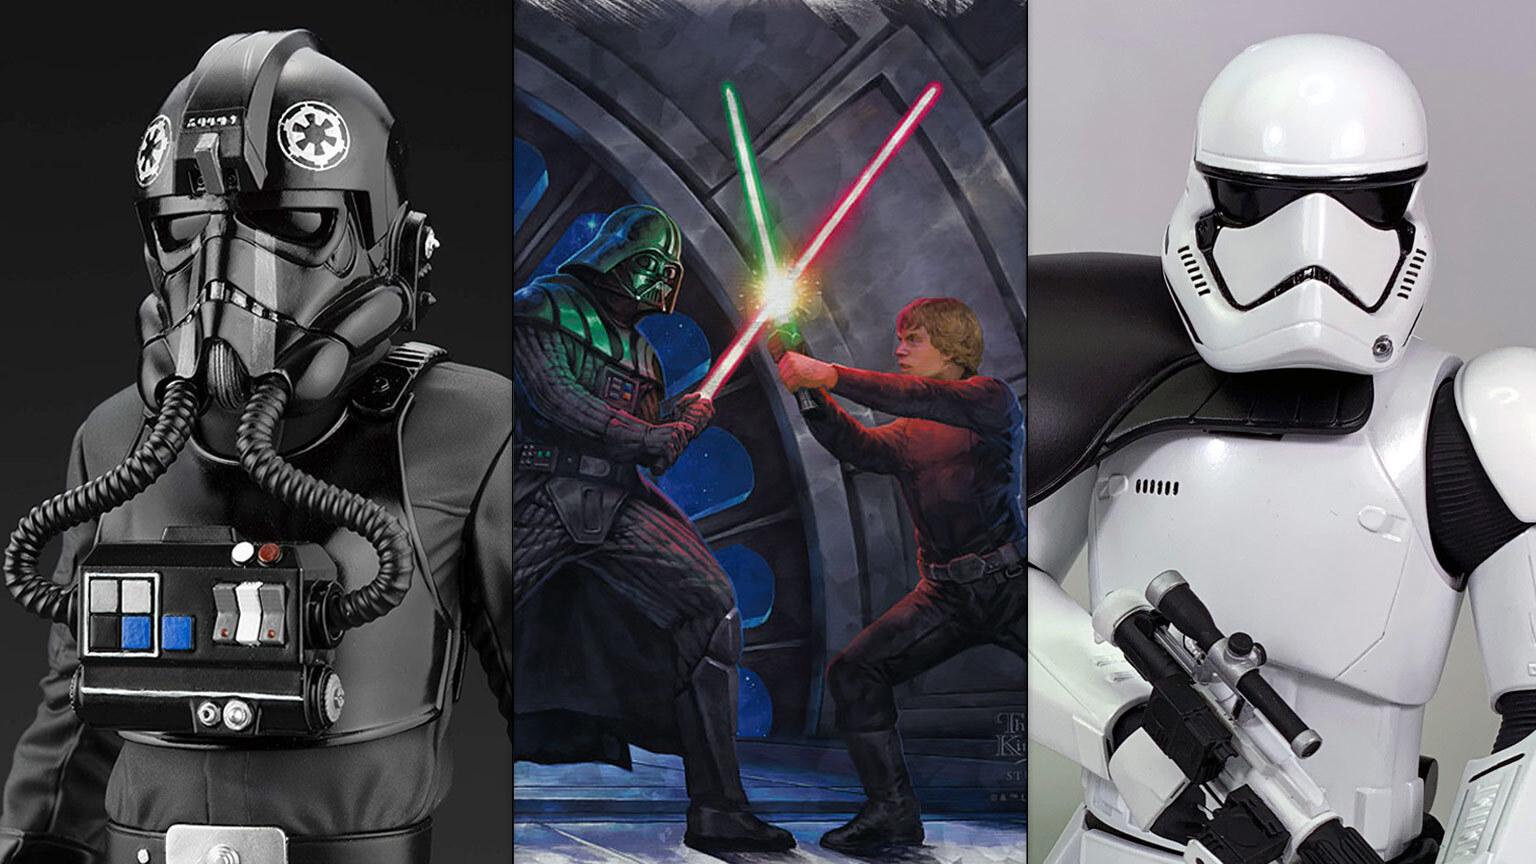 Star Wars Celebration 2020 Exclusives